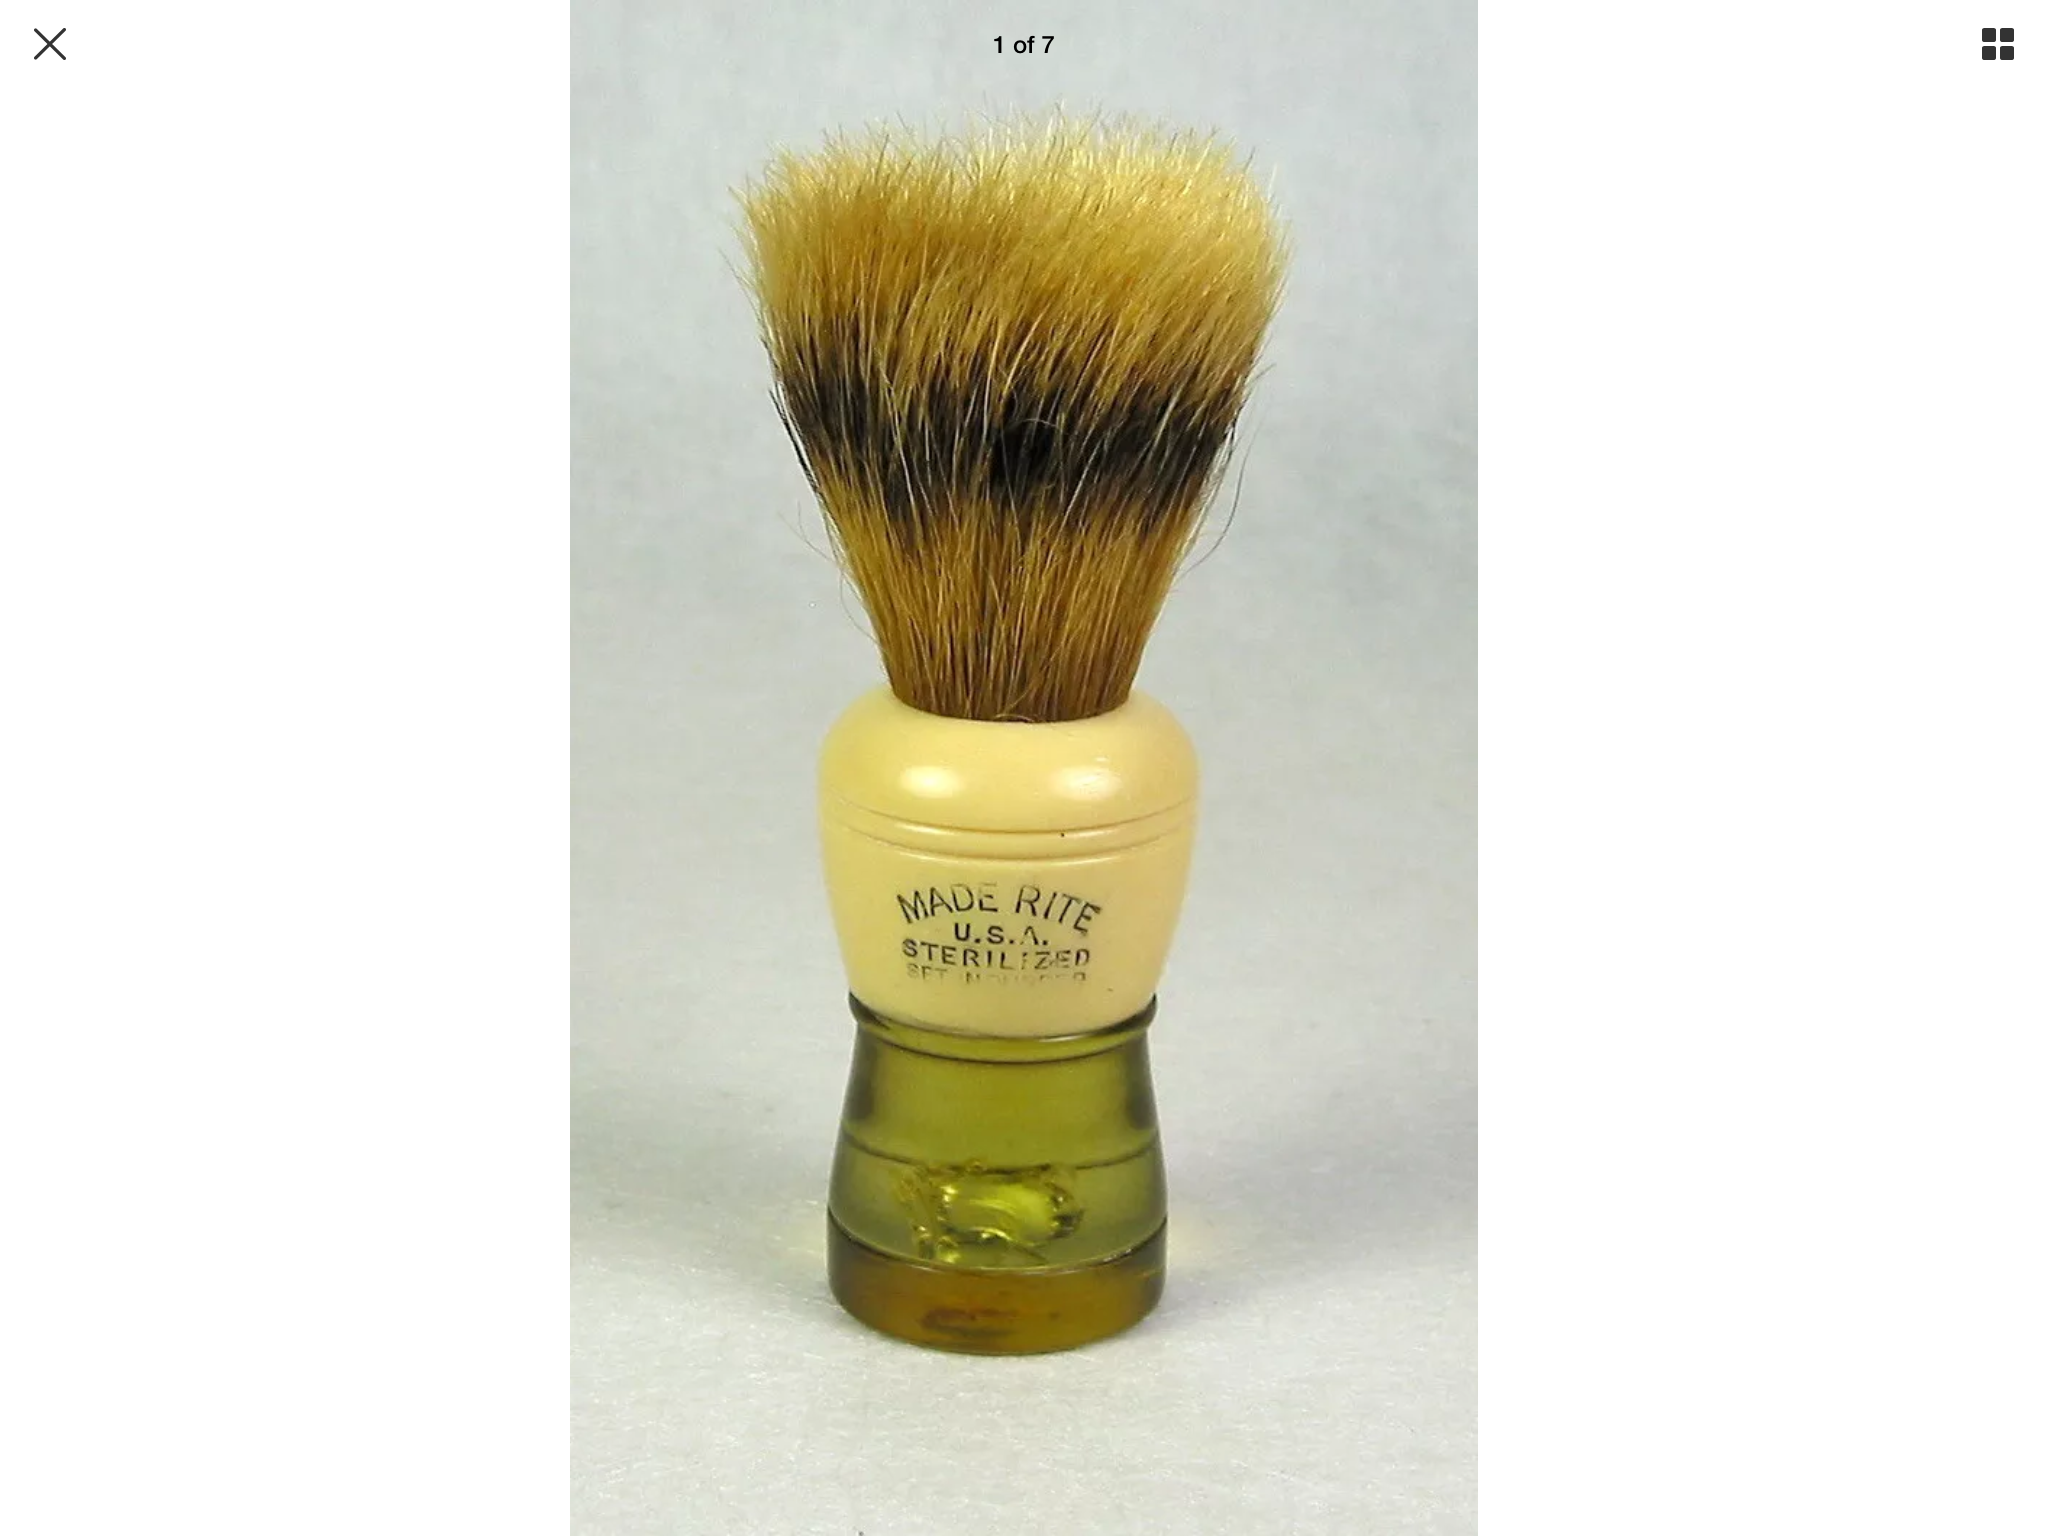 Pin by Jollity on Vintage Brushes & Mens Shaving Mens